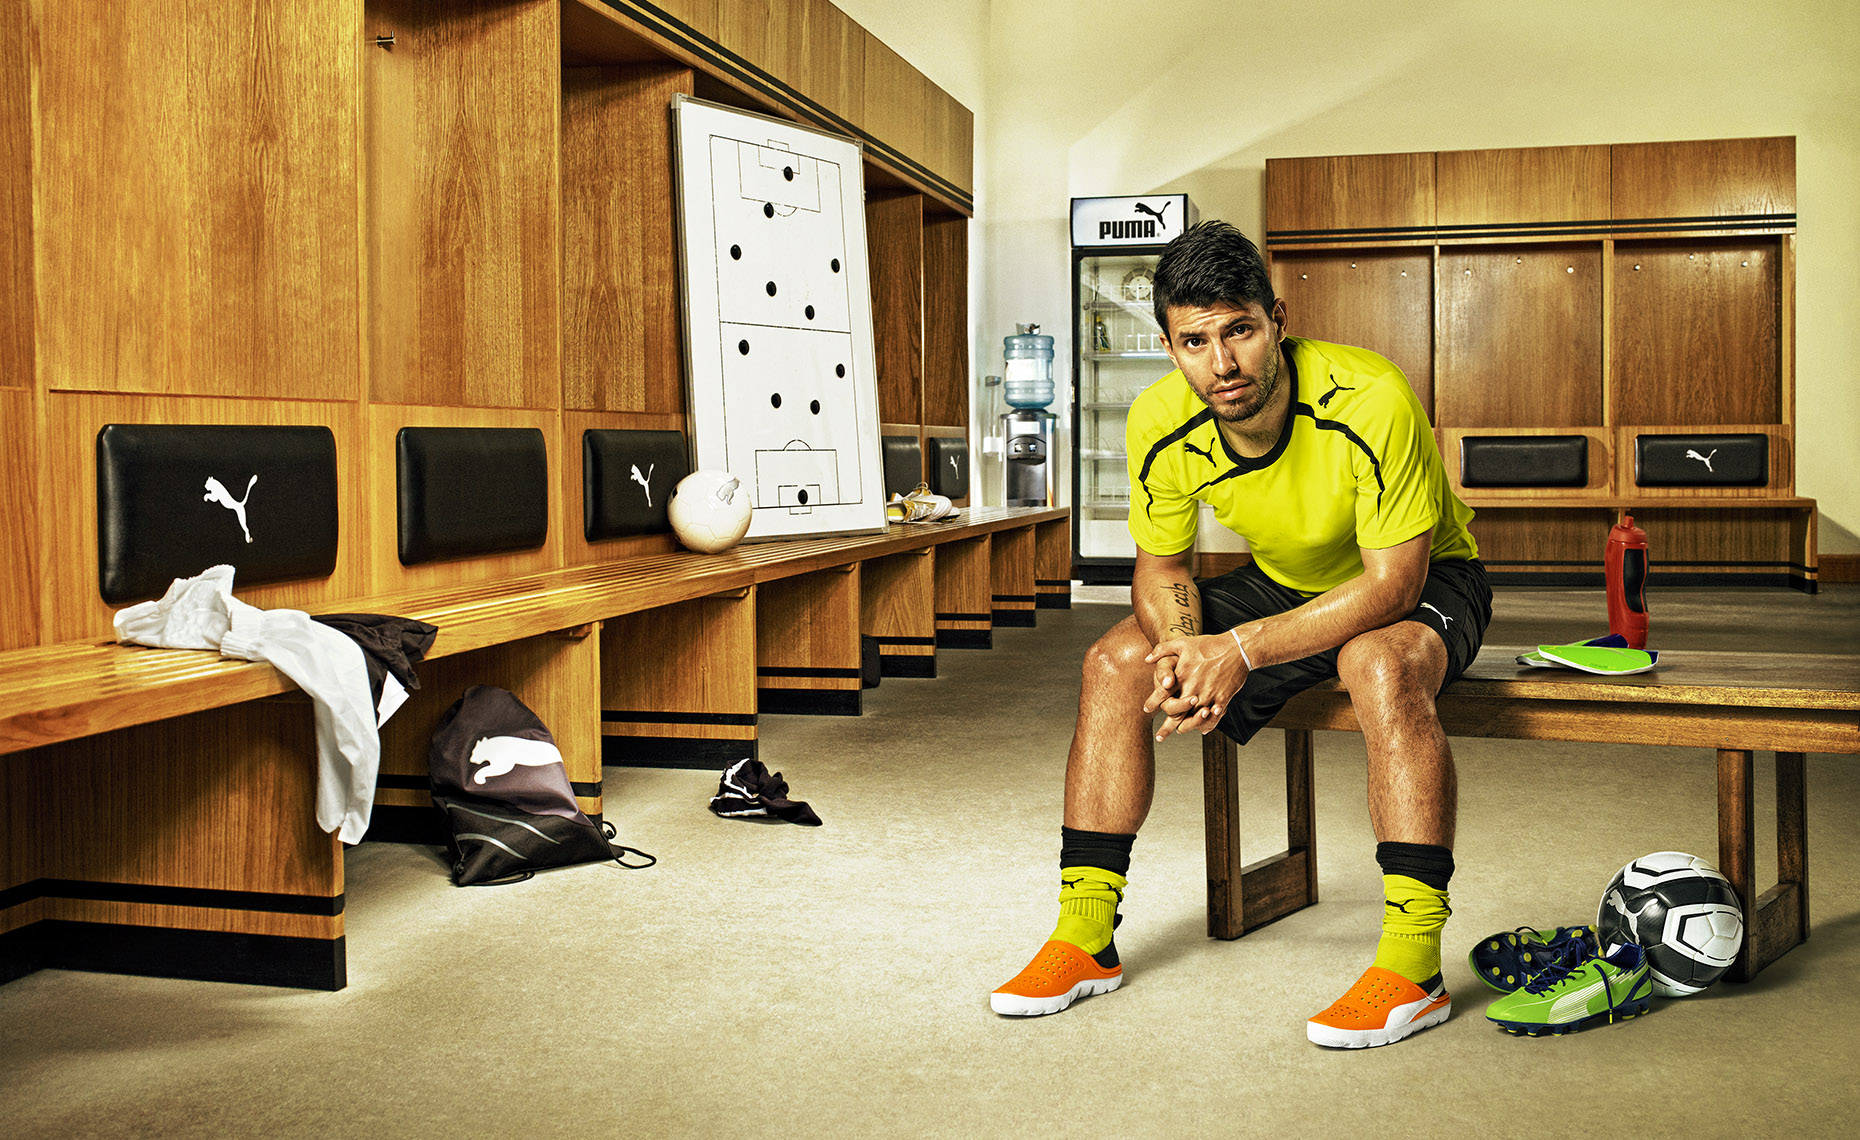 puma_aguero_locker_room_1860